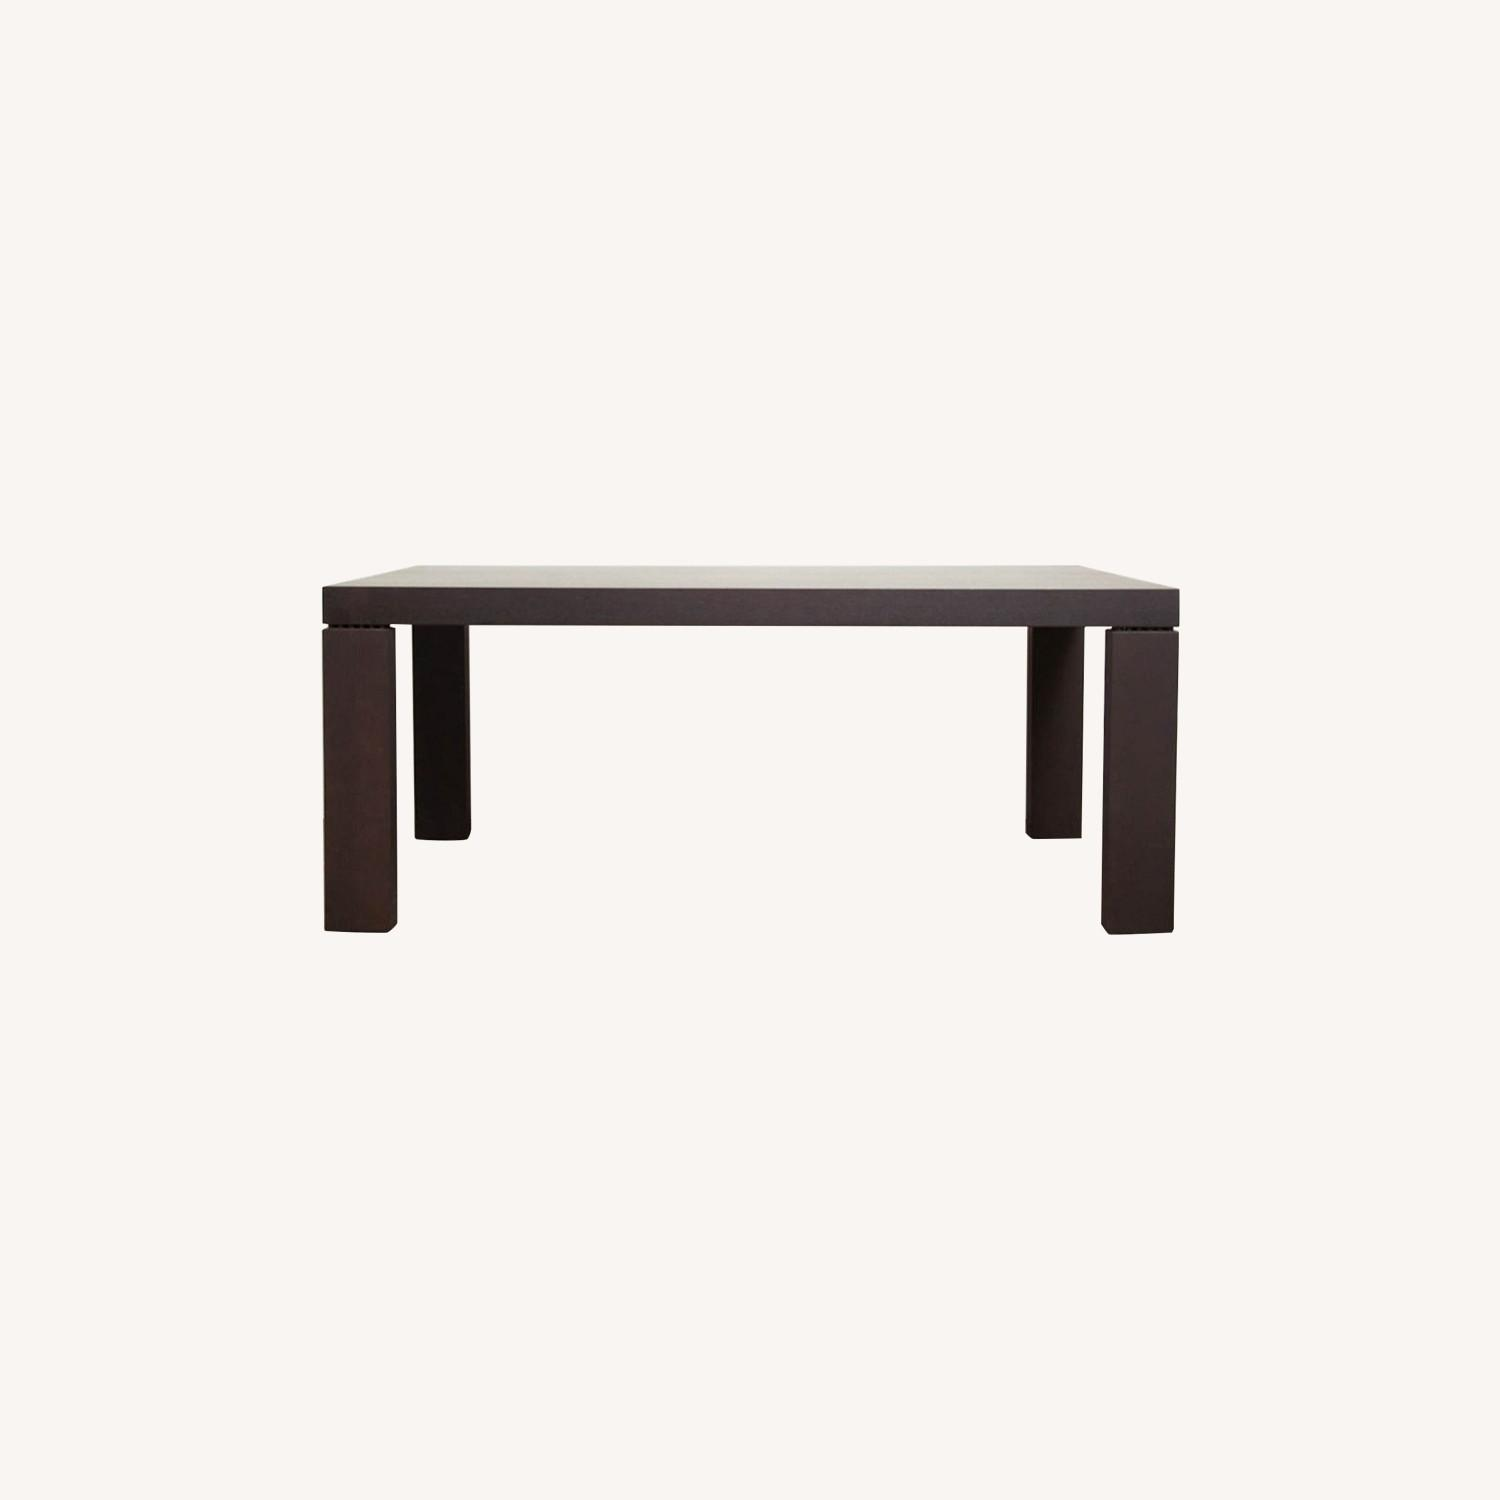 Molteni Luca Meda Extendable Dining Table - image-0